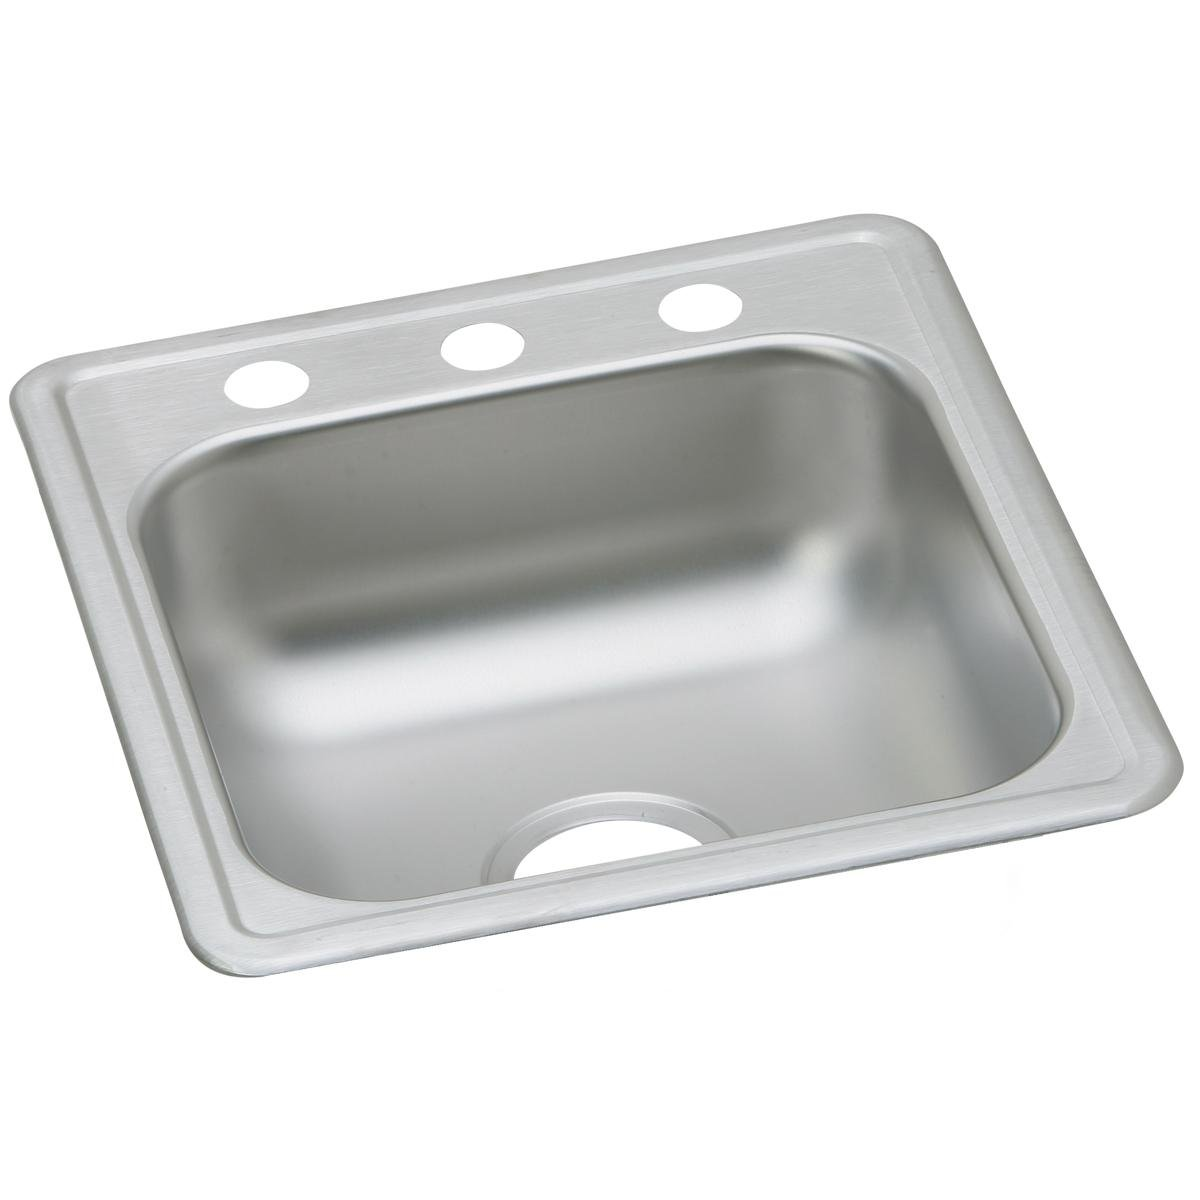 Dayton D117193 Single Bowl Top Mount Stainless Steel Bar Sink by Elkay